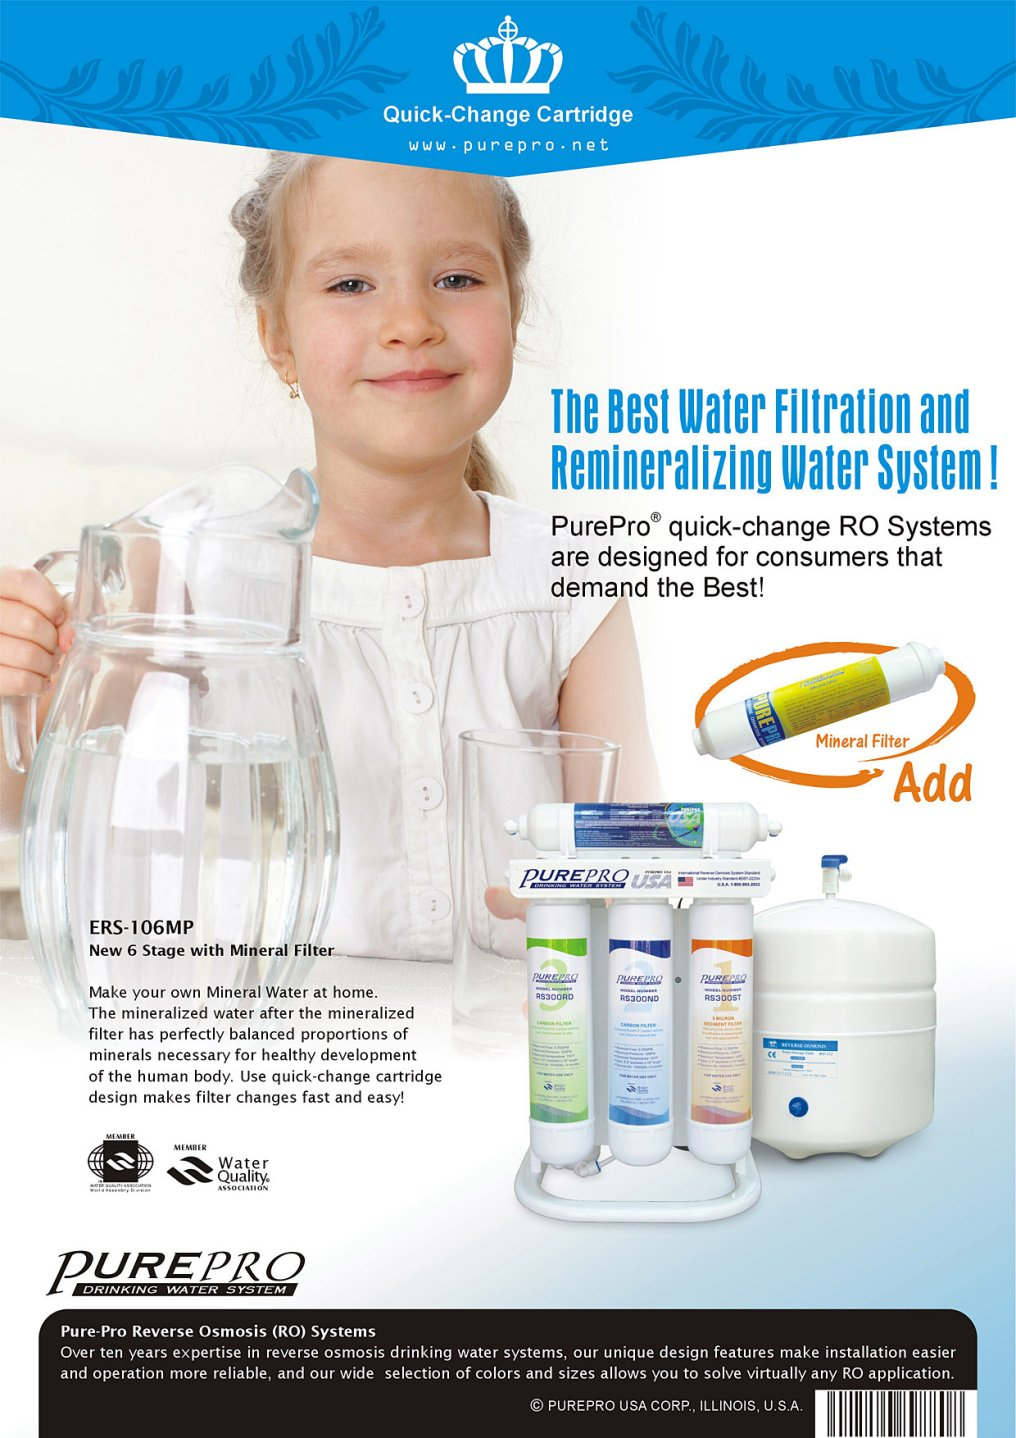 PurePro® USA ERS-106M Quick-Change Reverse Osmosis Water Filter Systems